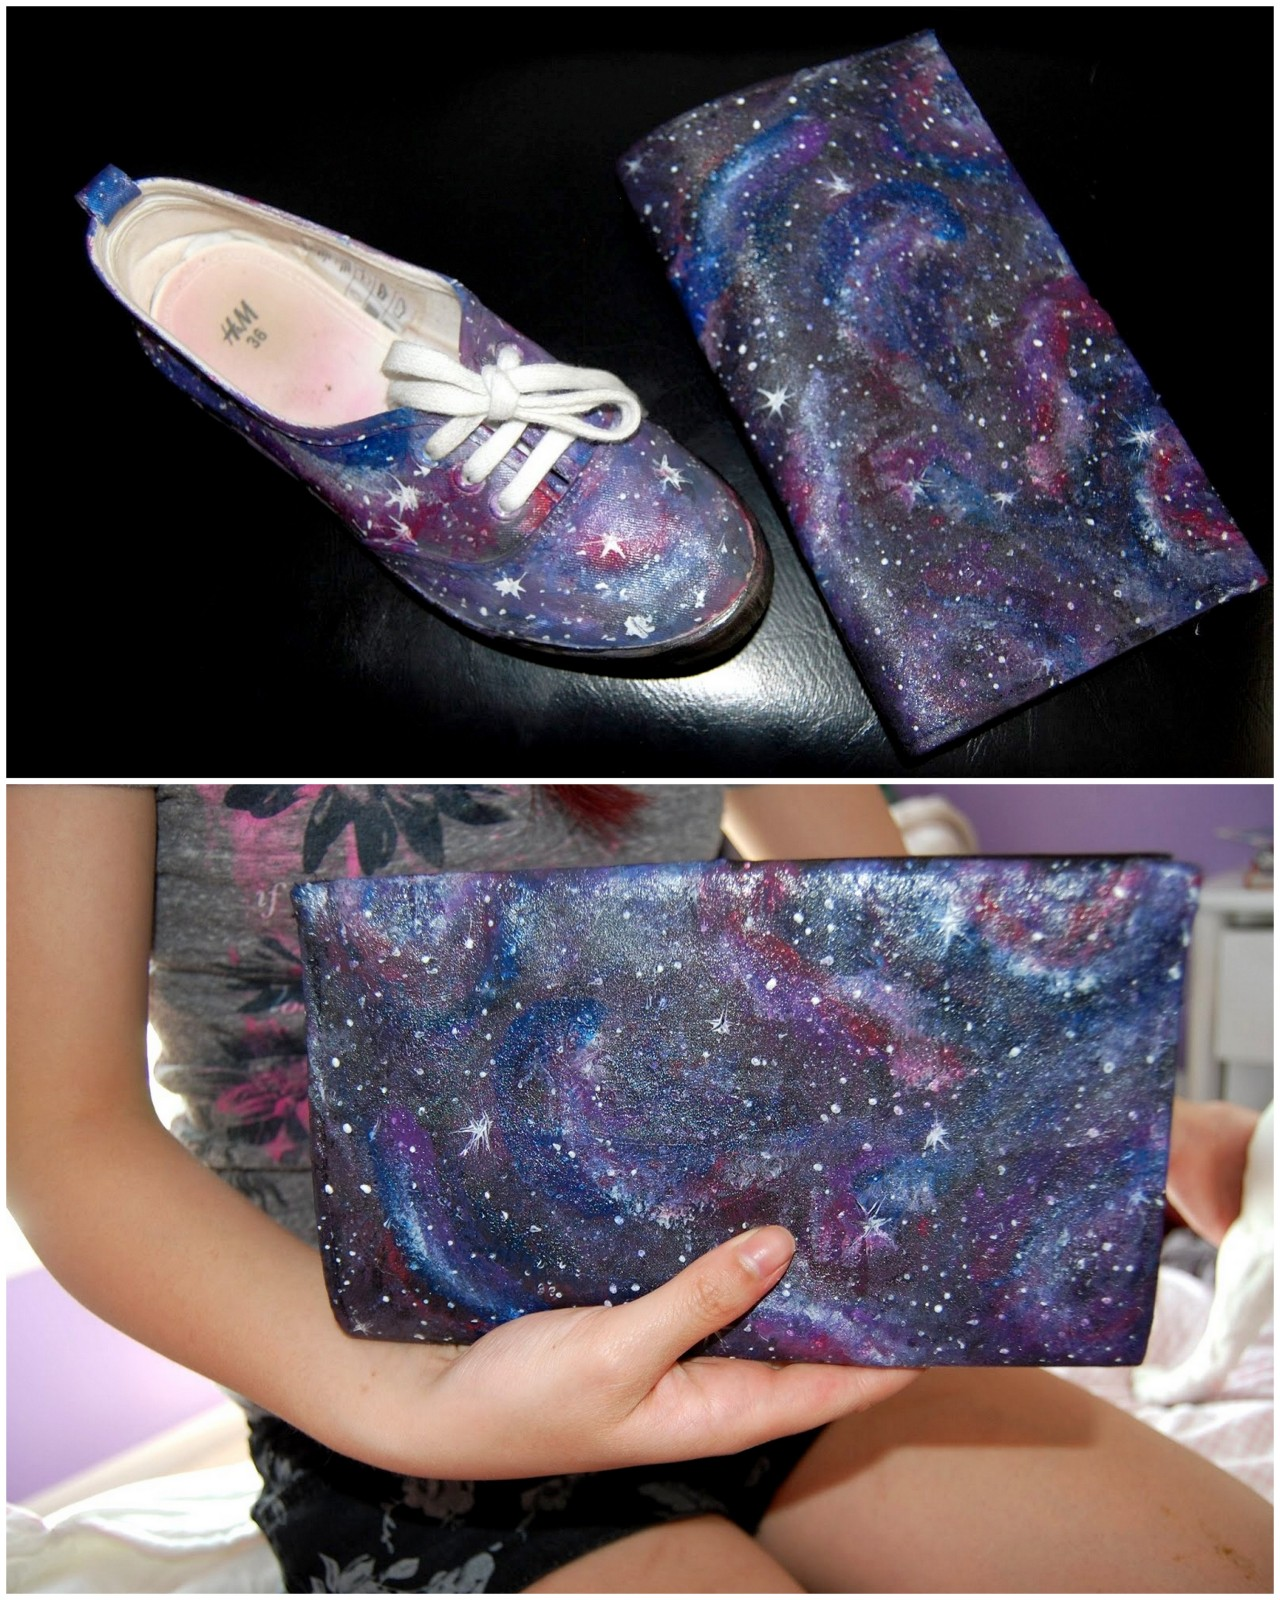 "truebluemeandyou:  DIY Best Galaxy Painting Tutorial Ever from Gloriously Chic here. Most galaxy painting tutorials just skim over the details and are really vague - but NOT this one. Very detailed and loads of photos. I really like Gloriously Chic's bog (and am so glad she initially messaged me!) because she is not a ""cutesy"" blogger and offers really good advice based on her DIY experiences. For more Galaxy DIYs go here (like copyright free NASA galaxy photos): truebluemeandyou.tumblr.com/tagged/galaxy"